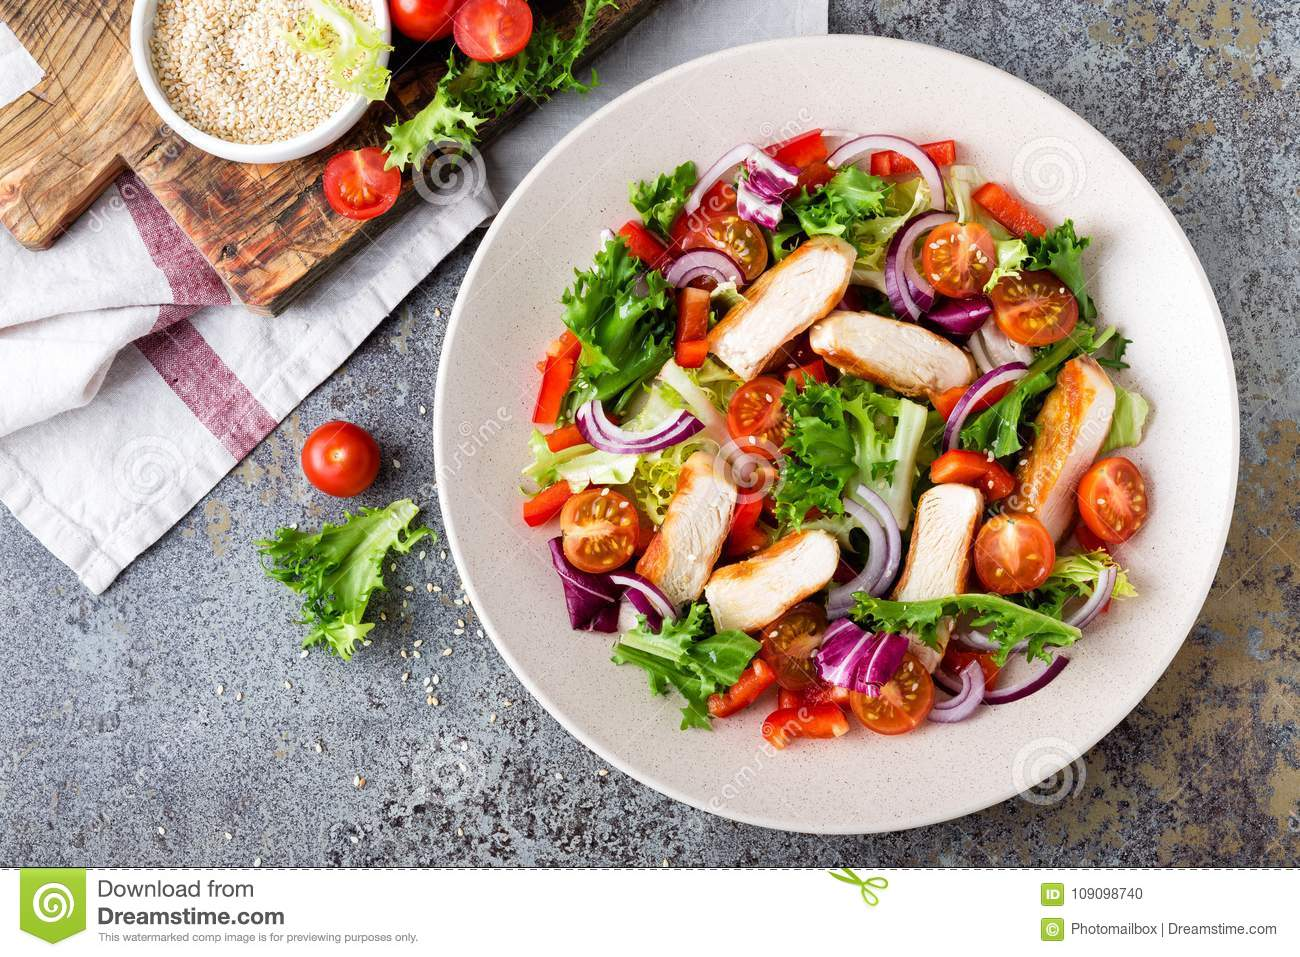 Healthy vegetable salad with grilled chicken breast, fresh lettuce, cherry tomatoes, red onion and pepper